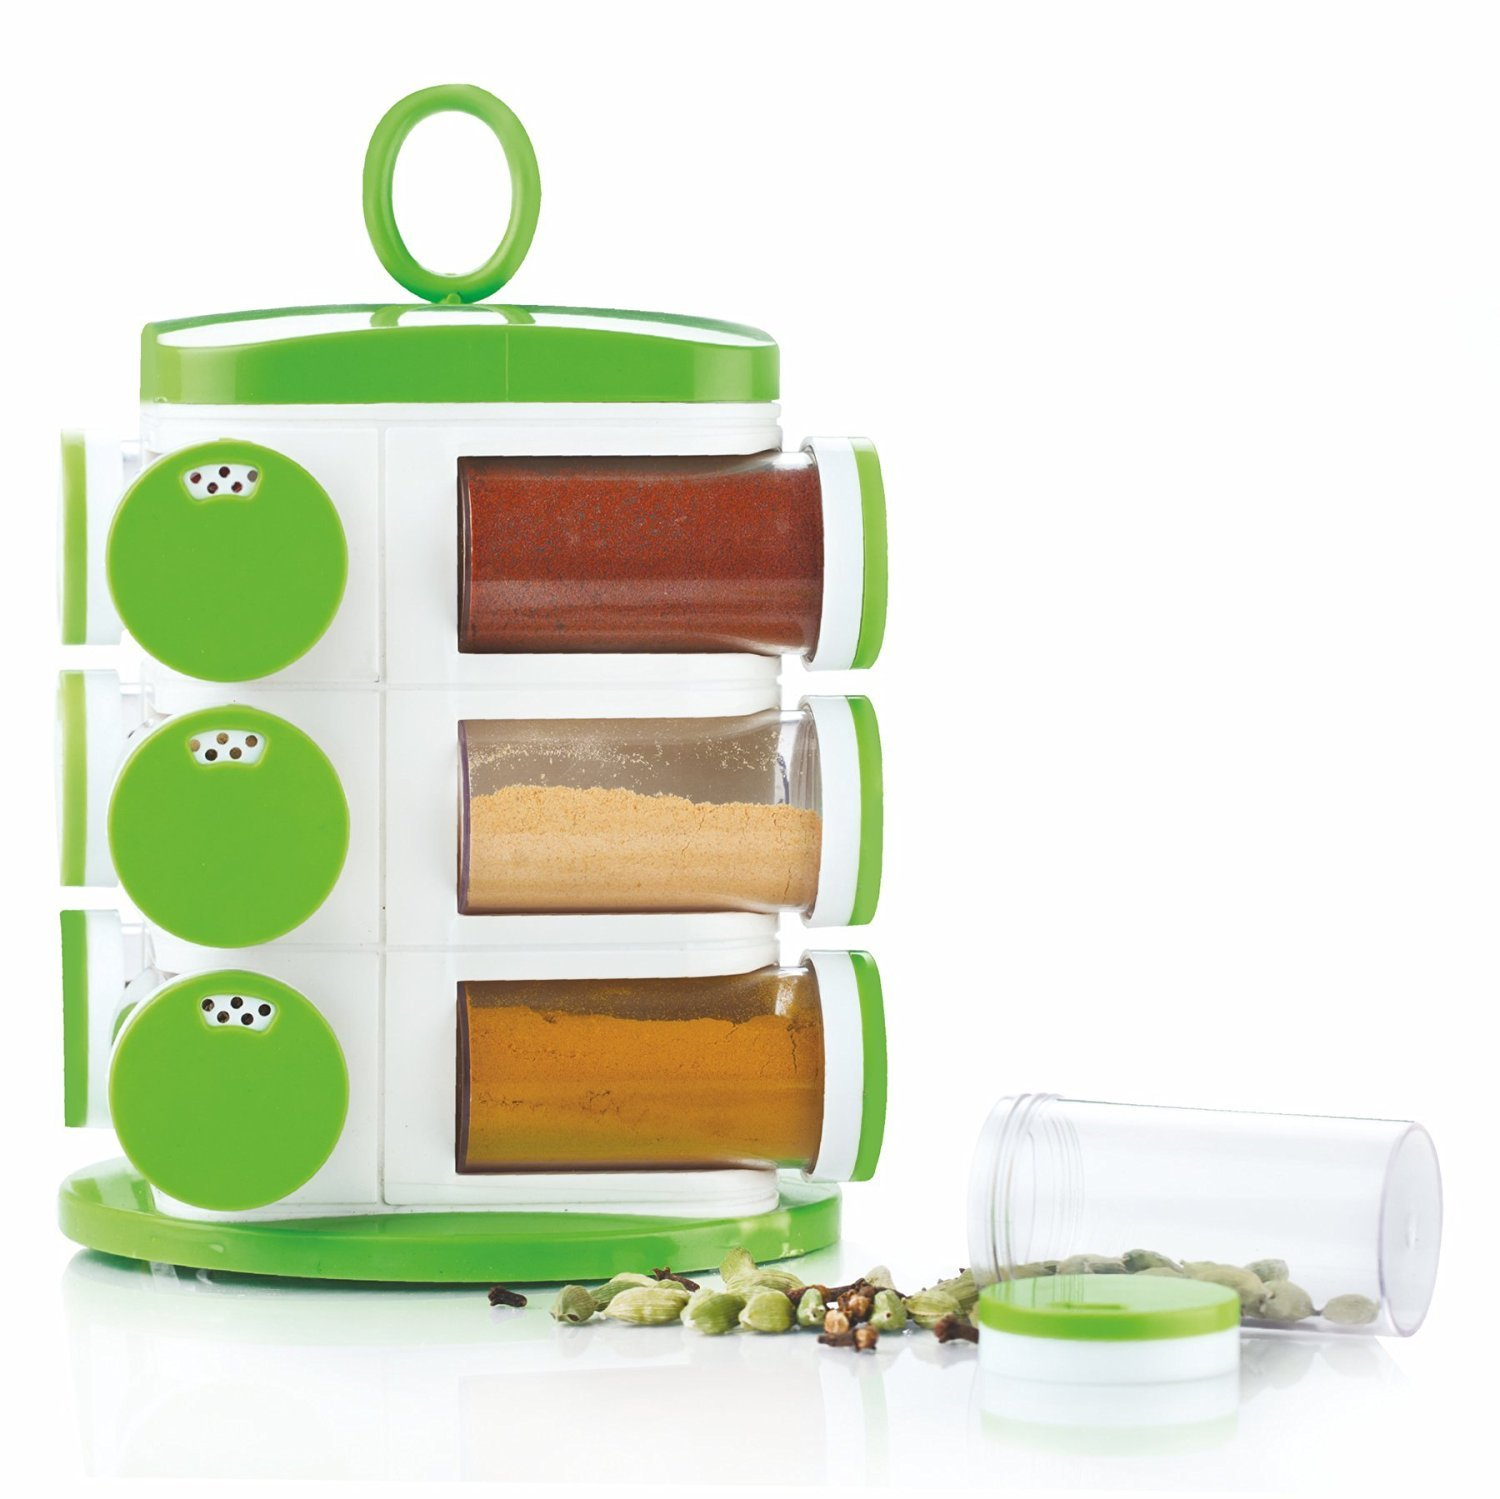 Jony Multipurpose Revolving Spice Rack 12 Piece Condiment Set - Green JSR01